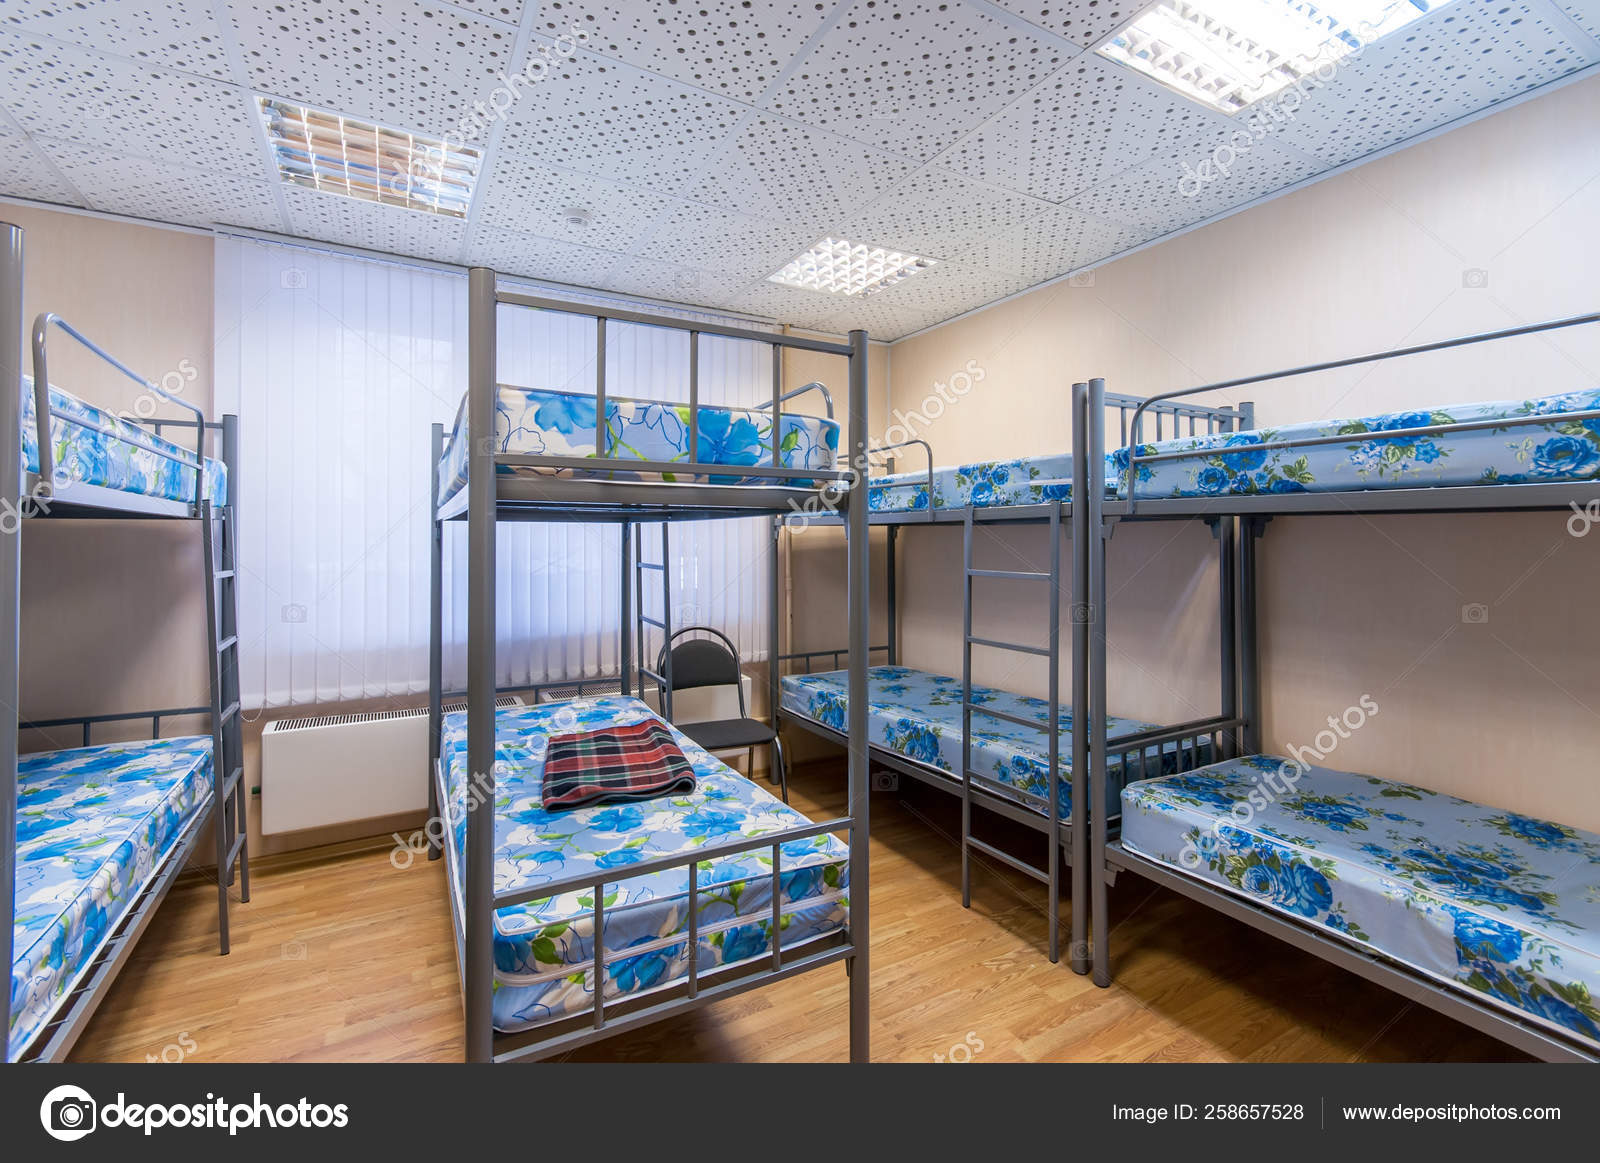 Bunk Metal Beds Clean Hostel Room Stock Editorial Photo C Yayimages 258657528